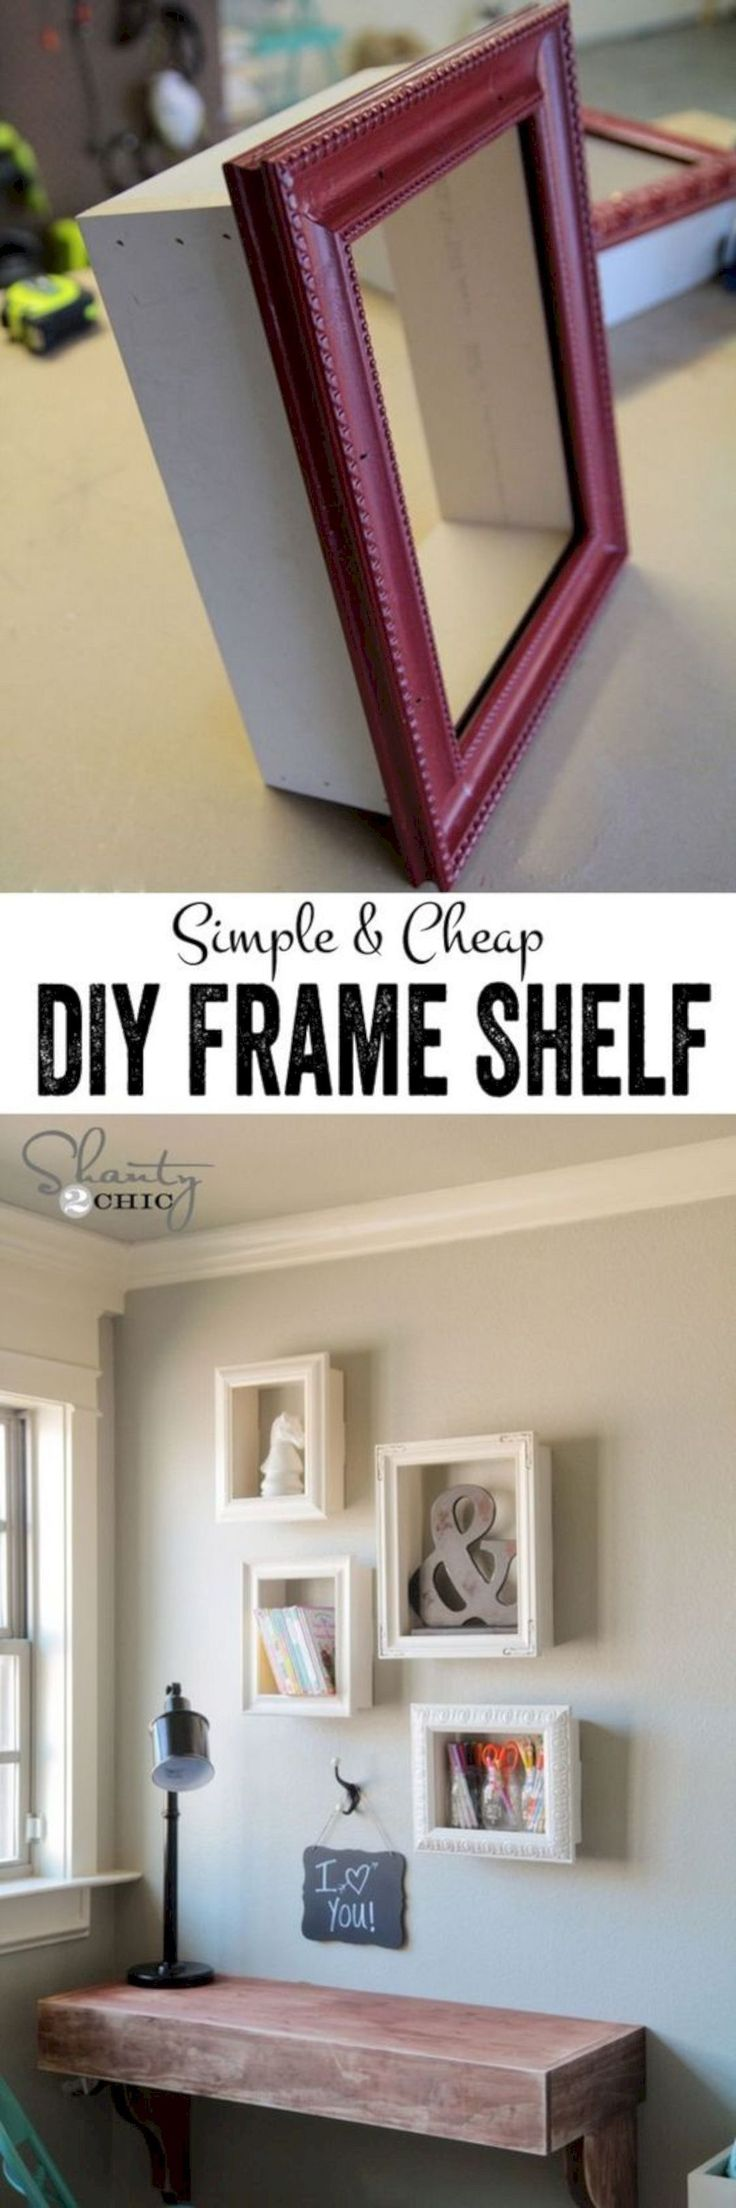 3 Home Decor Trends For Spring Brittany Stager: Best 25+ Cheap Shelves Ideas On Pinterest